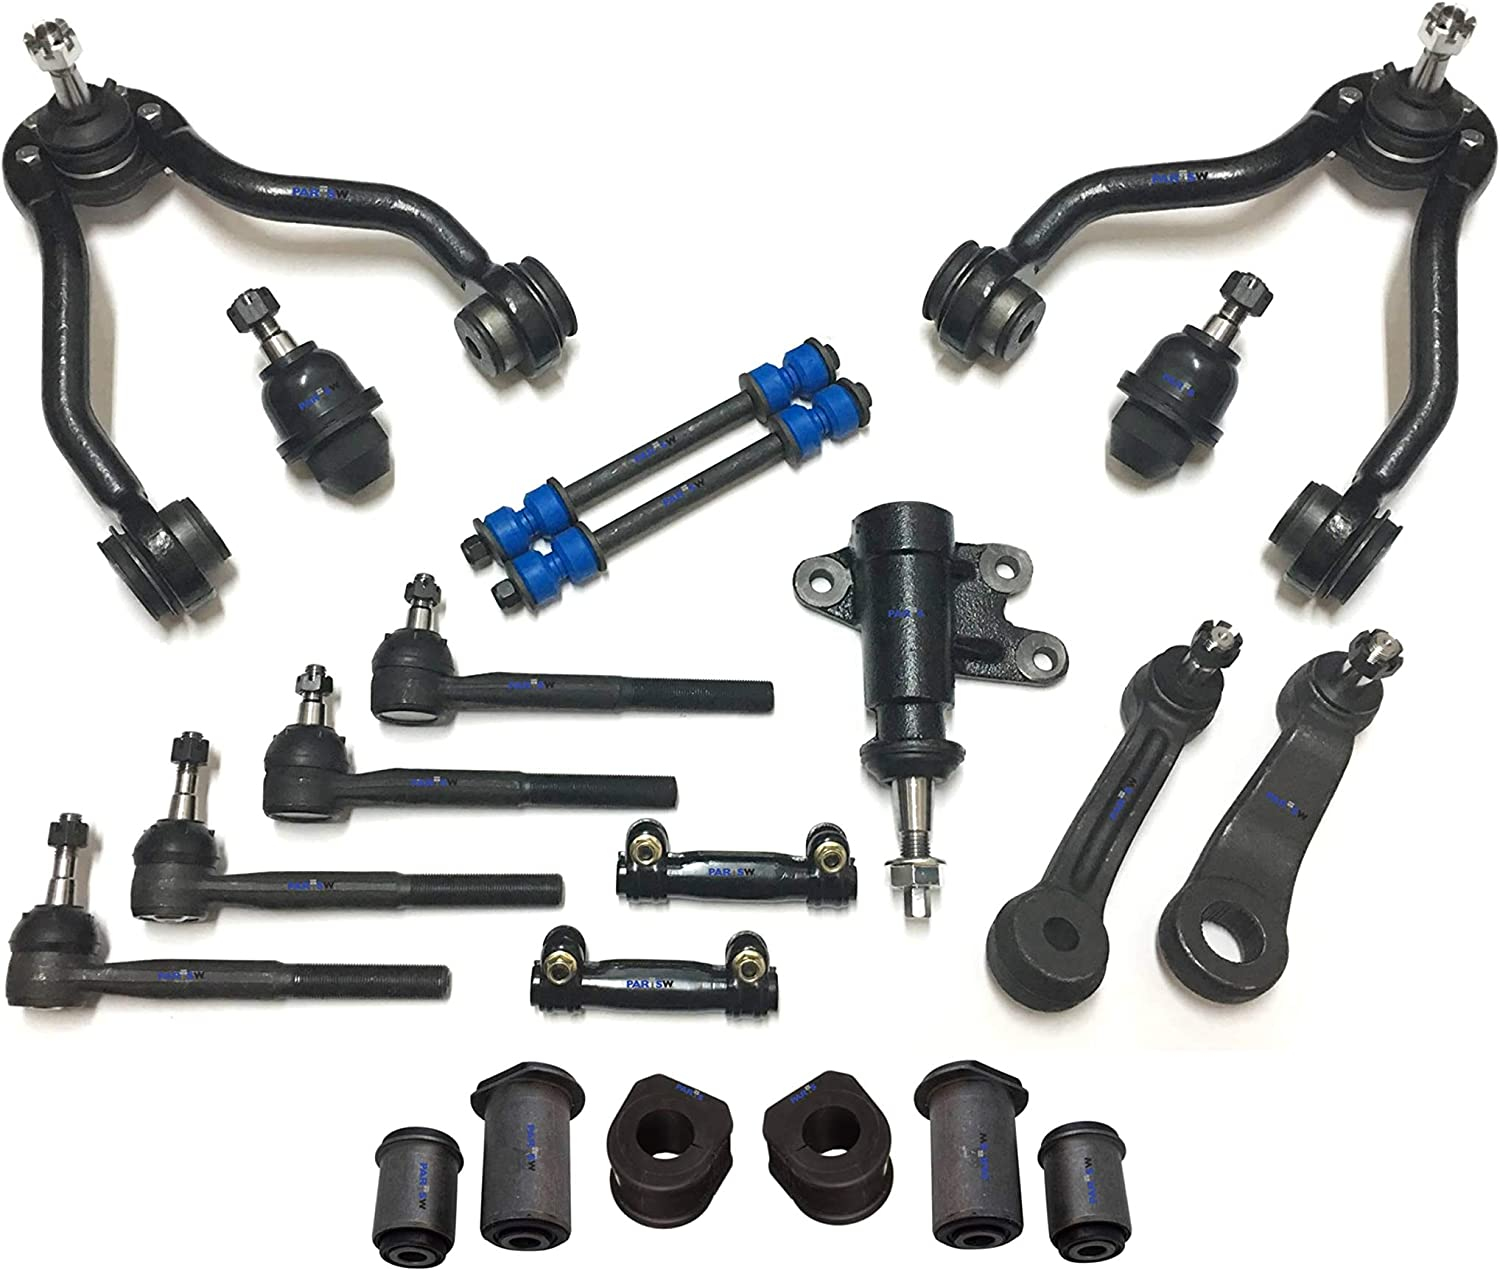 Yukon//Inner /& Outer Tie Rod Ends PartsW 21 Pc Suspension Kit for Escalade 1.06 Inch Front Sway Bar Frame Bushings 27mm Idler /& Pitman Arms K1500//K2500 Control Arms /& Ball Joints